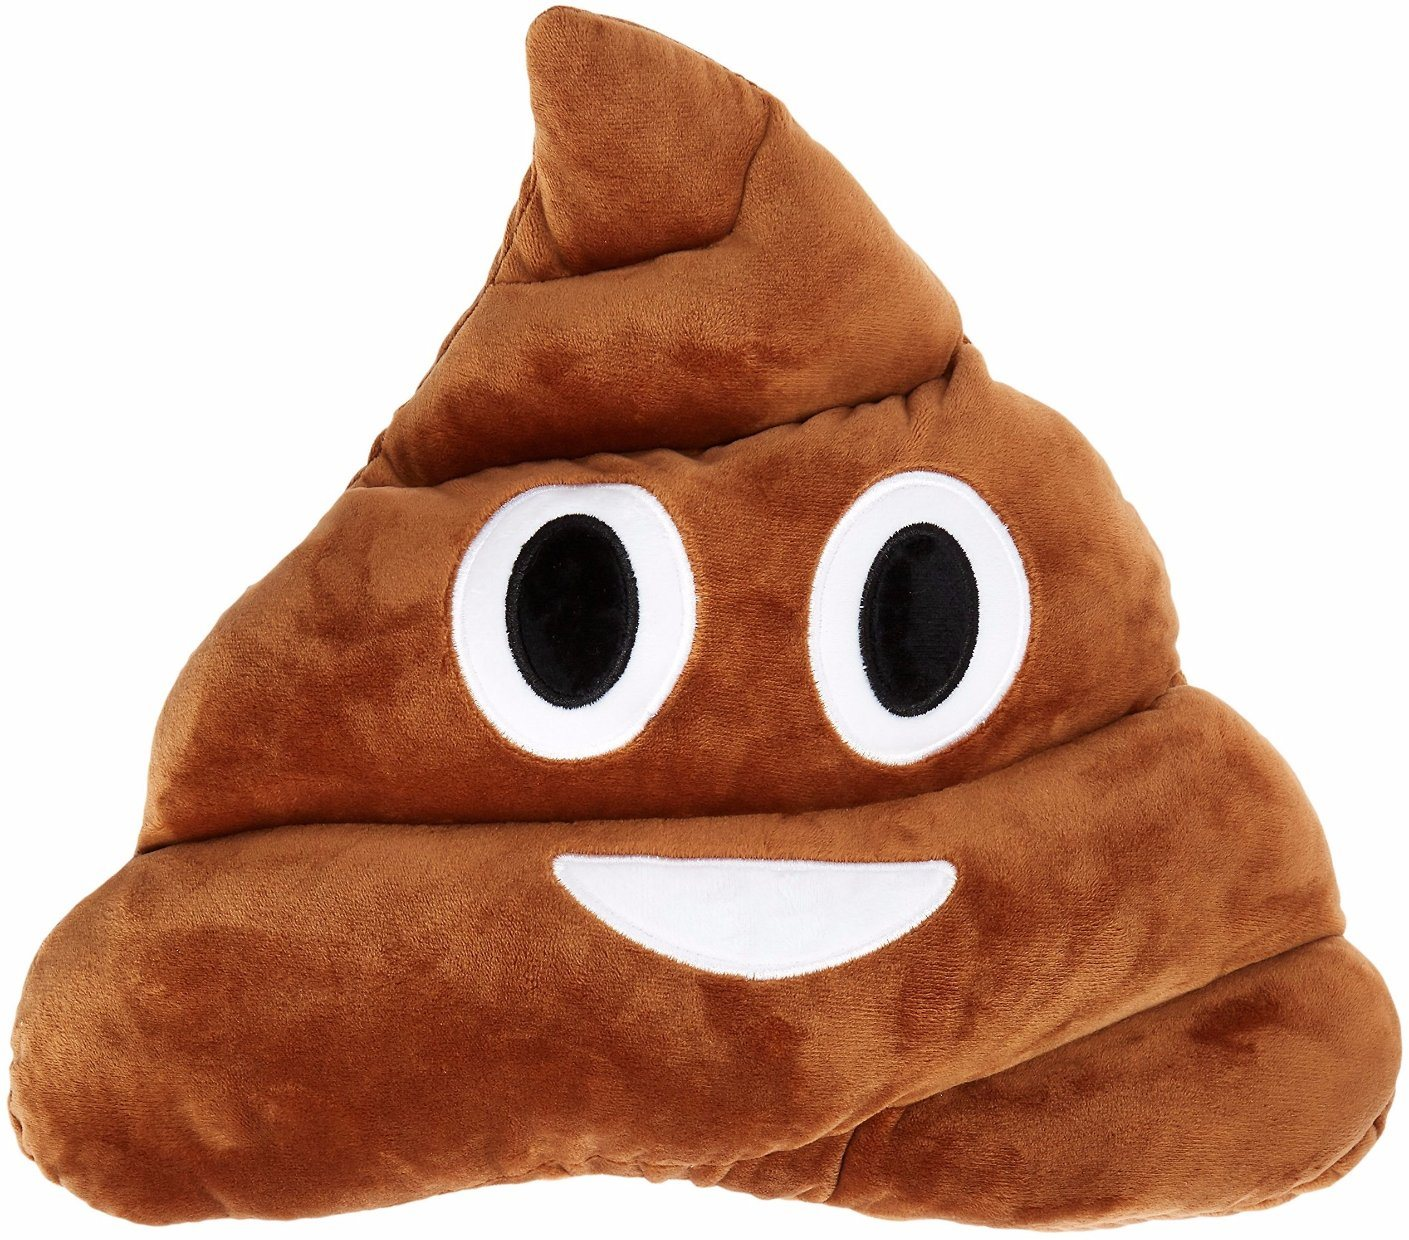 Soft Colorful Polyester Fabric Poop Emoji Pillow